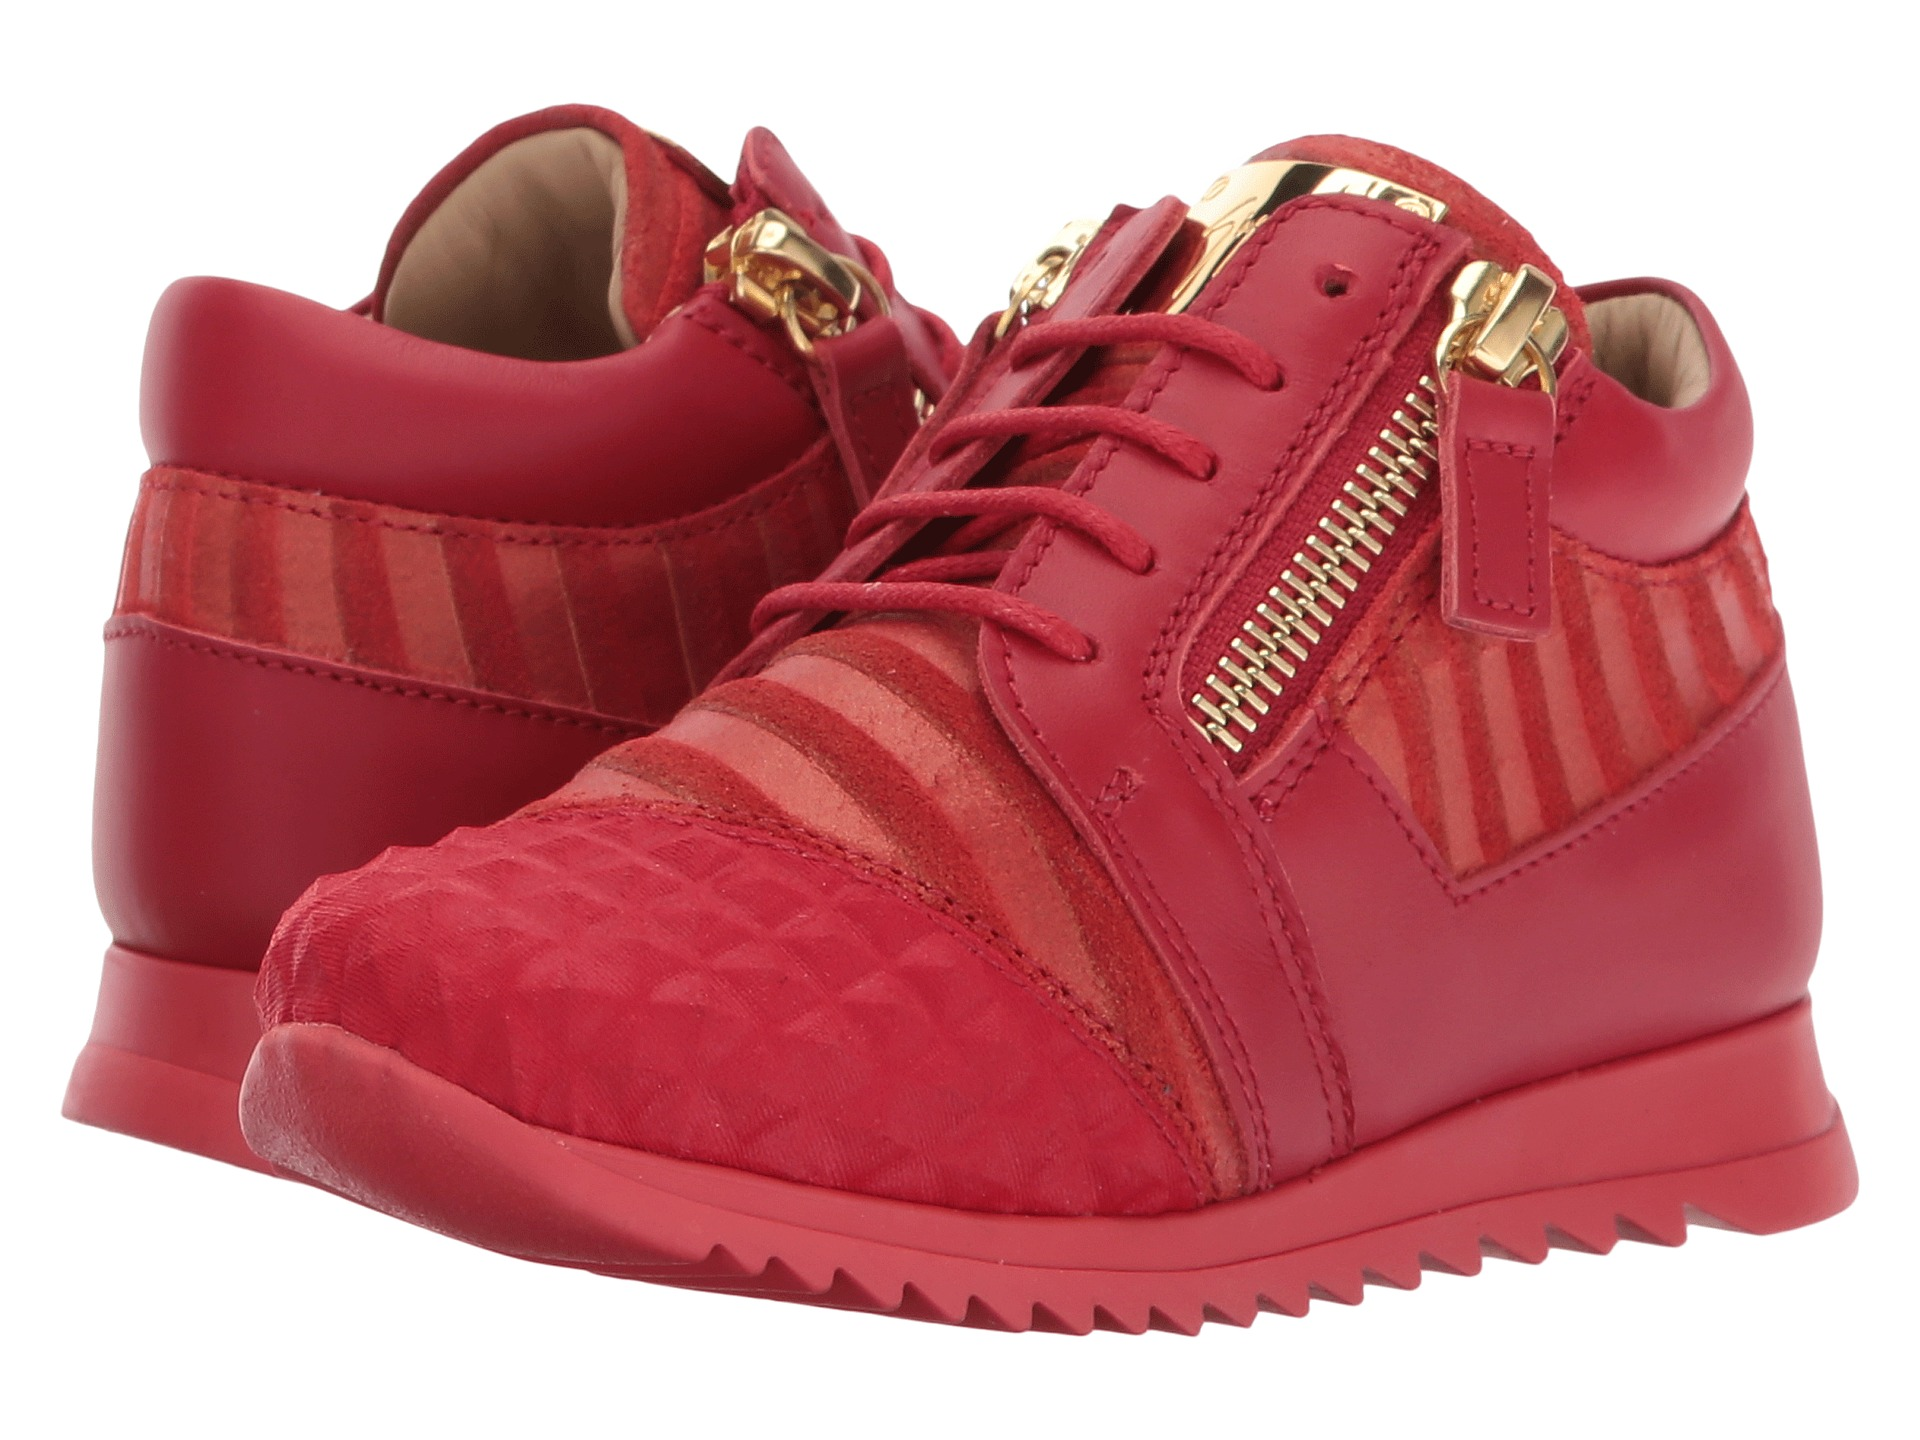 giuseppe zanotti stud sneaker toddler at luxury